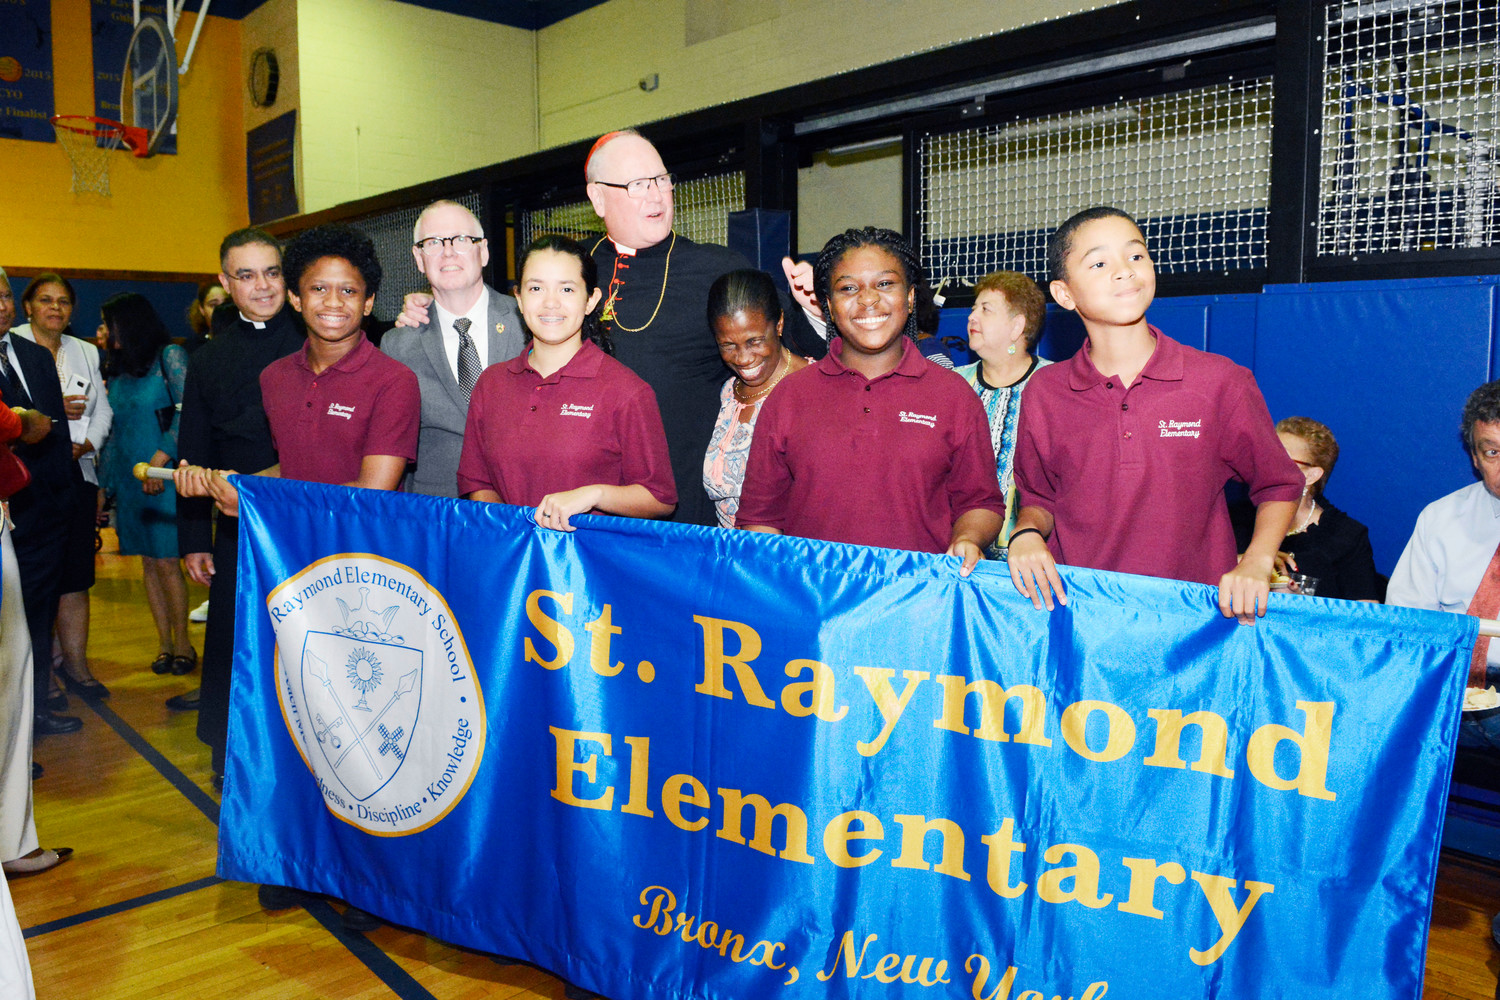 Cardinal Dolan stands behind students of St. Raymond's Elementary School at a reception following Mass in the Bronx Sept. 16. St. Raymond's Elementary School, with 900 students, is one of three parish schools with St. Raymond's High School for Boys and St. Raymond's Academy for Girls.